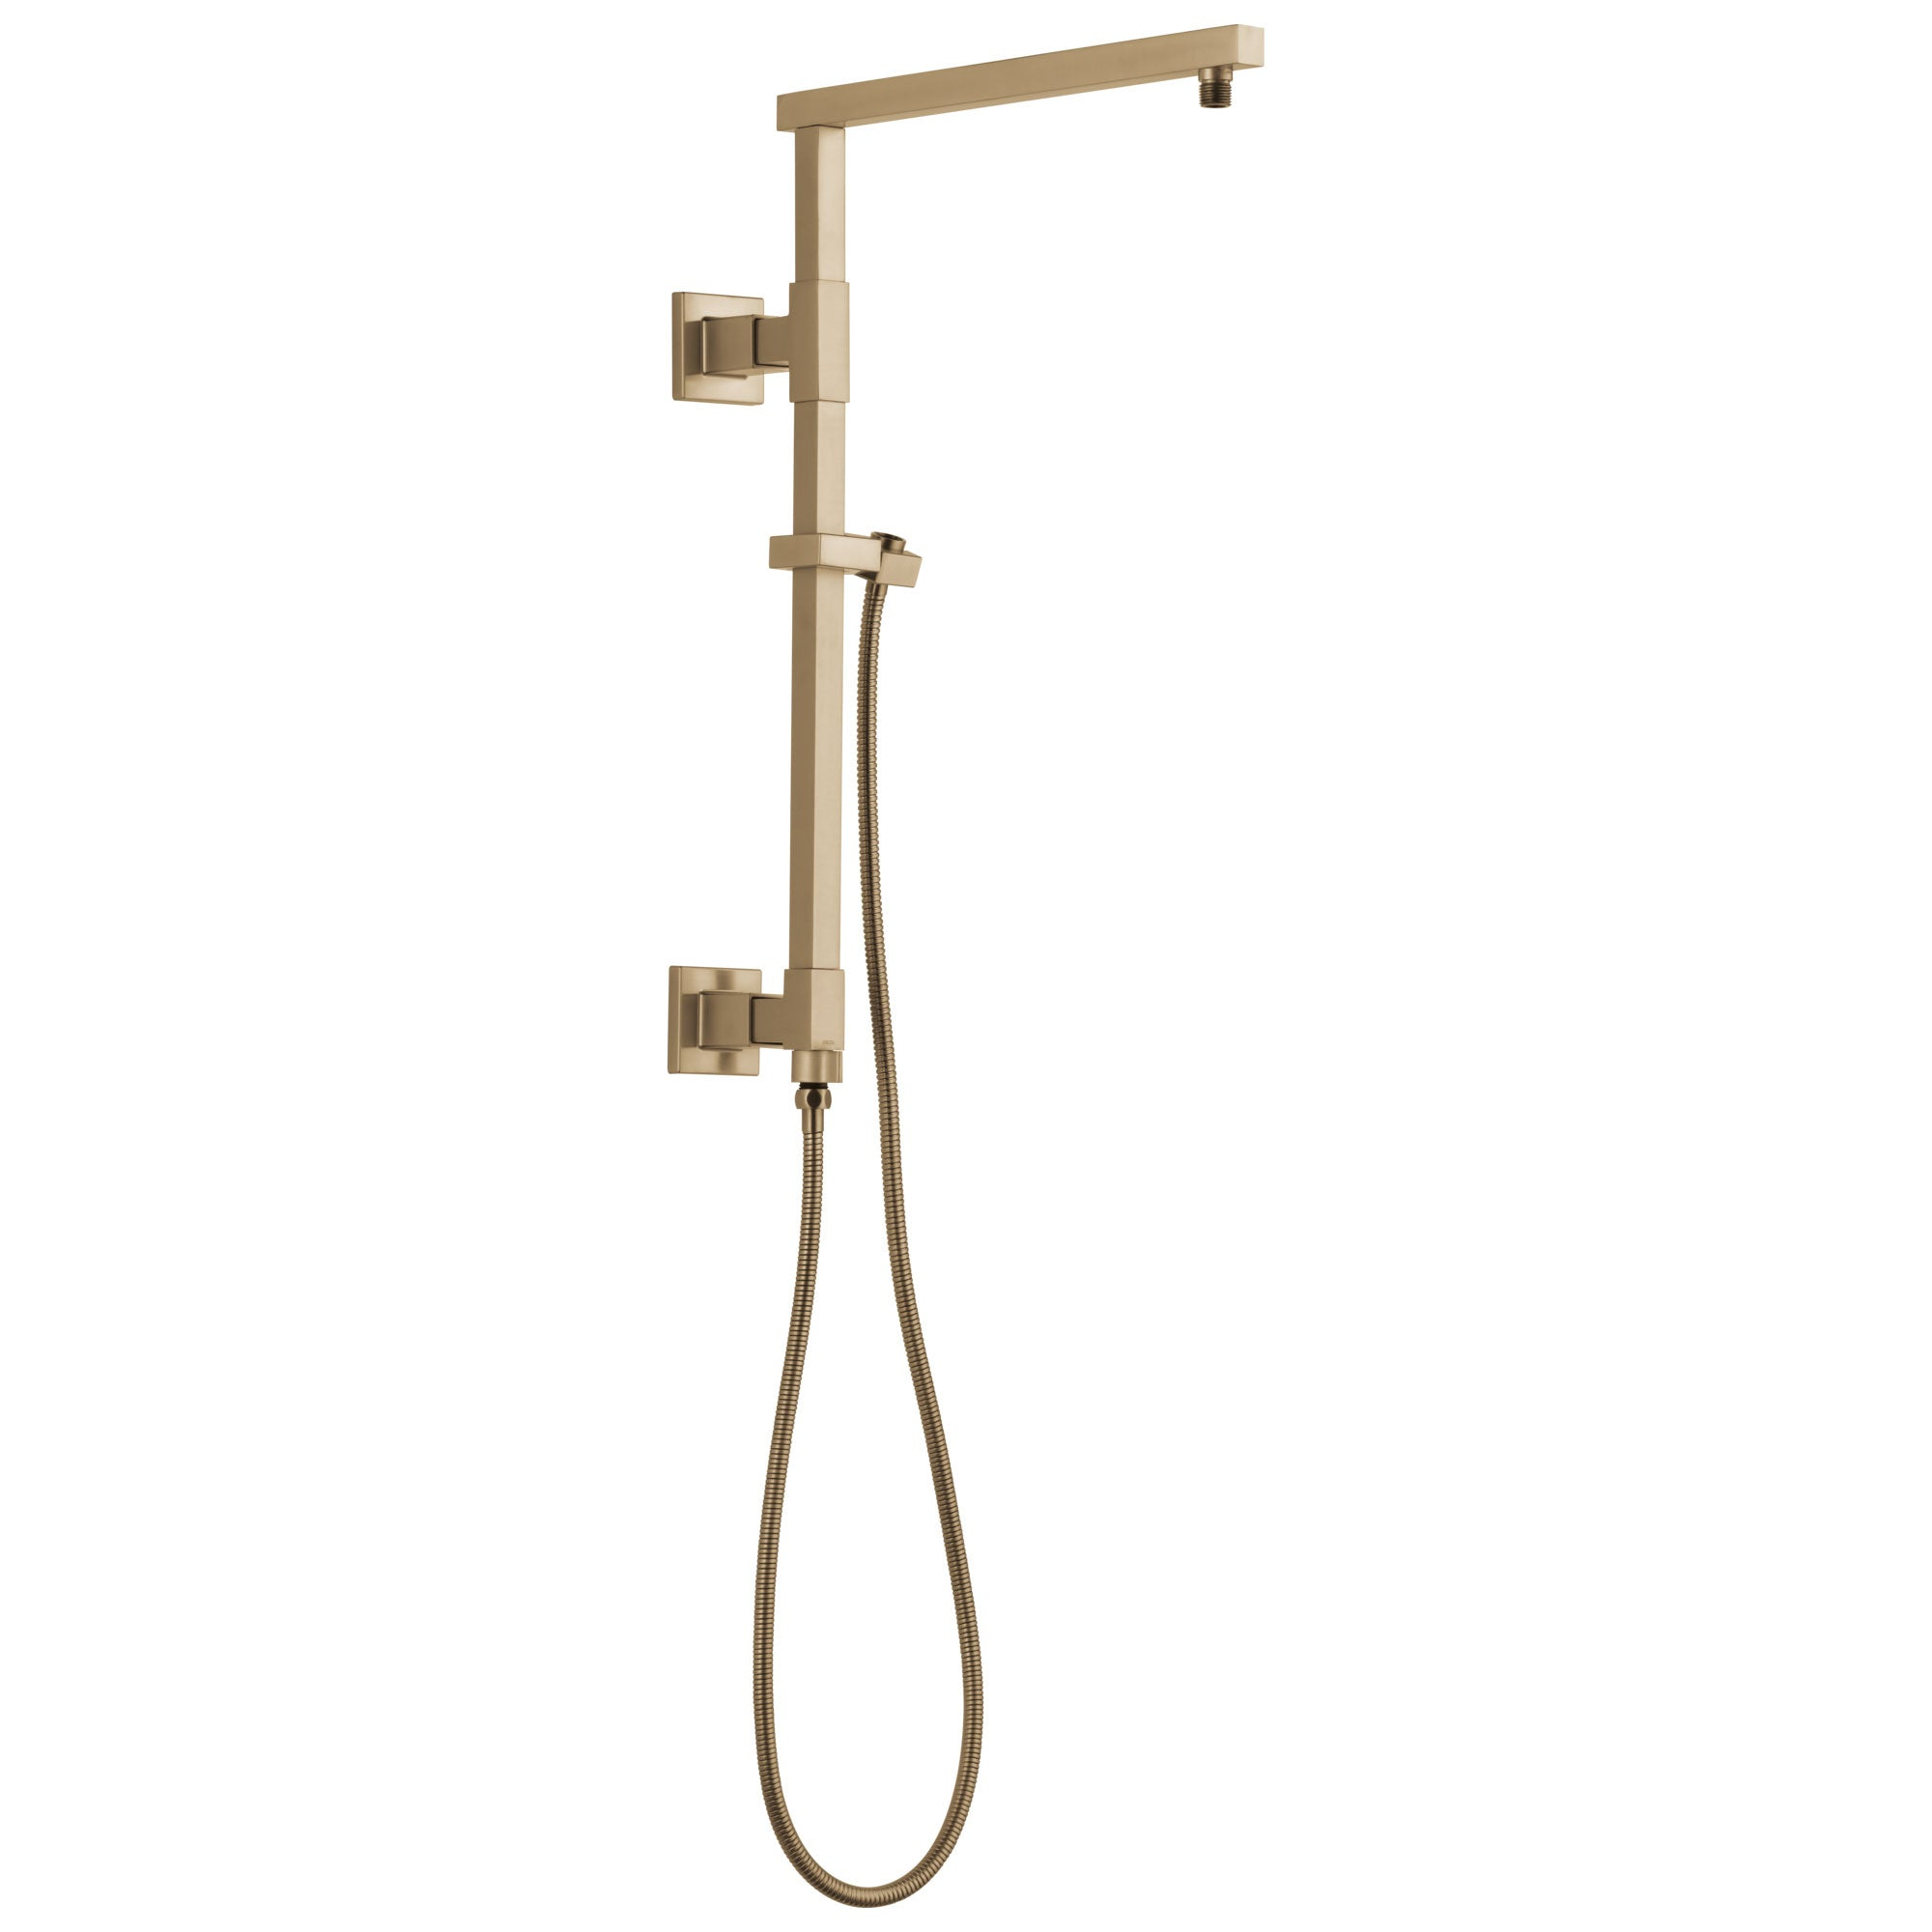 "Delta Champagne Bronze Finish Emerge Modern Angular Square Shower Column 18"" (Requires Showerhead, Hand Spray, and Control) D58410CZ"